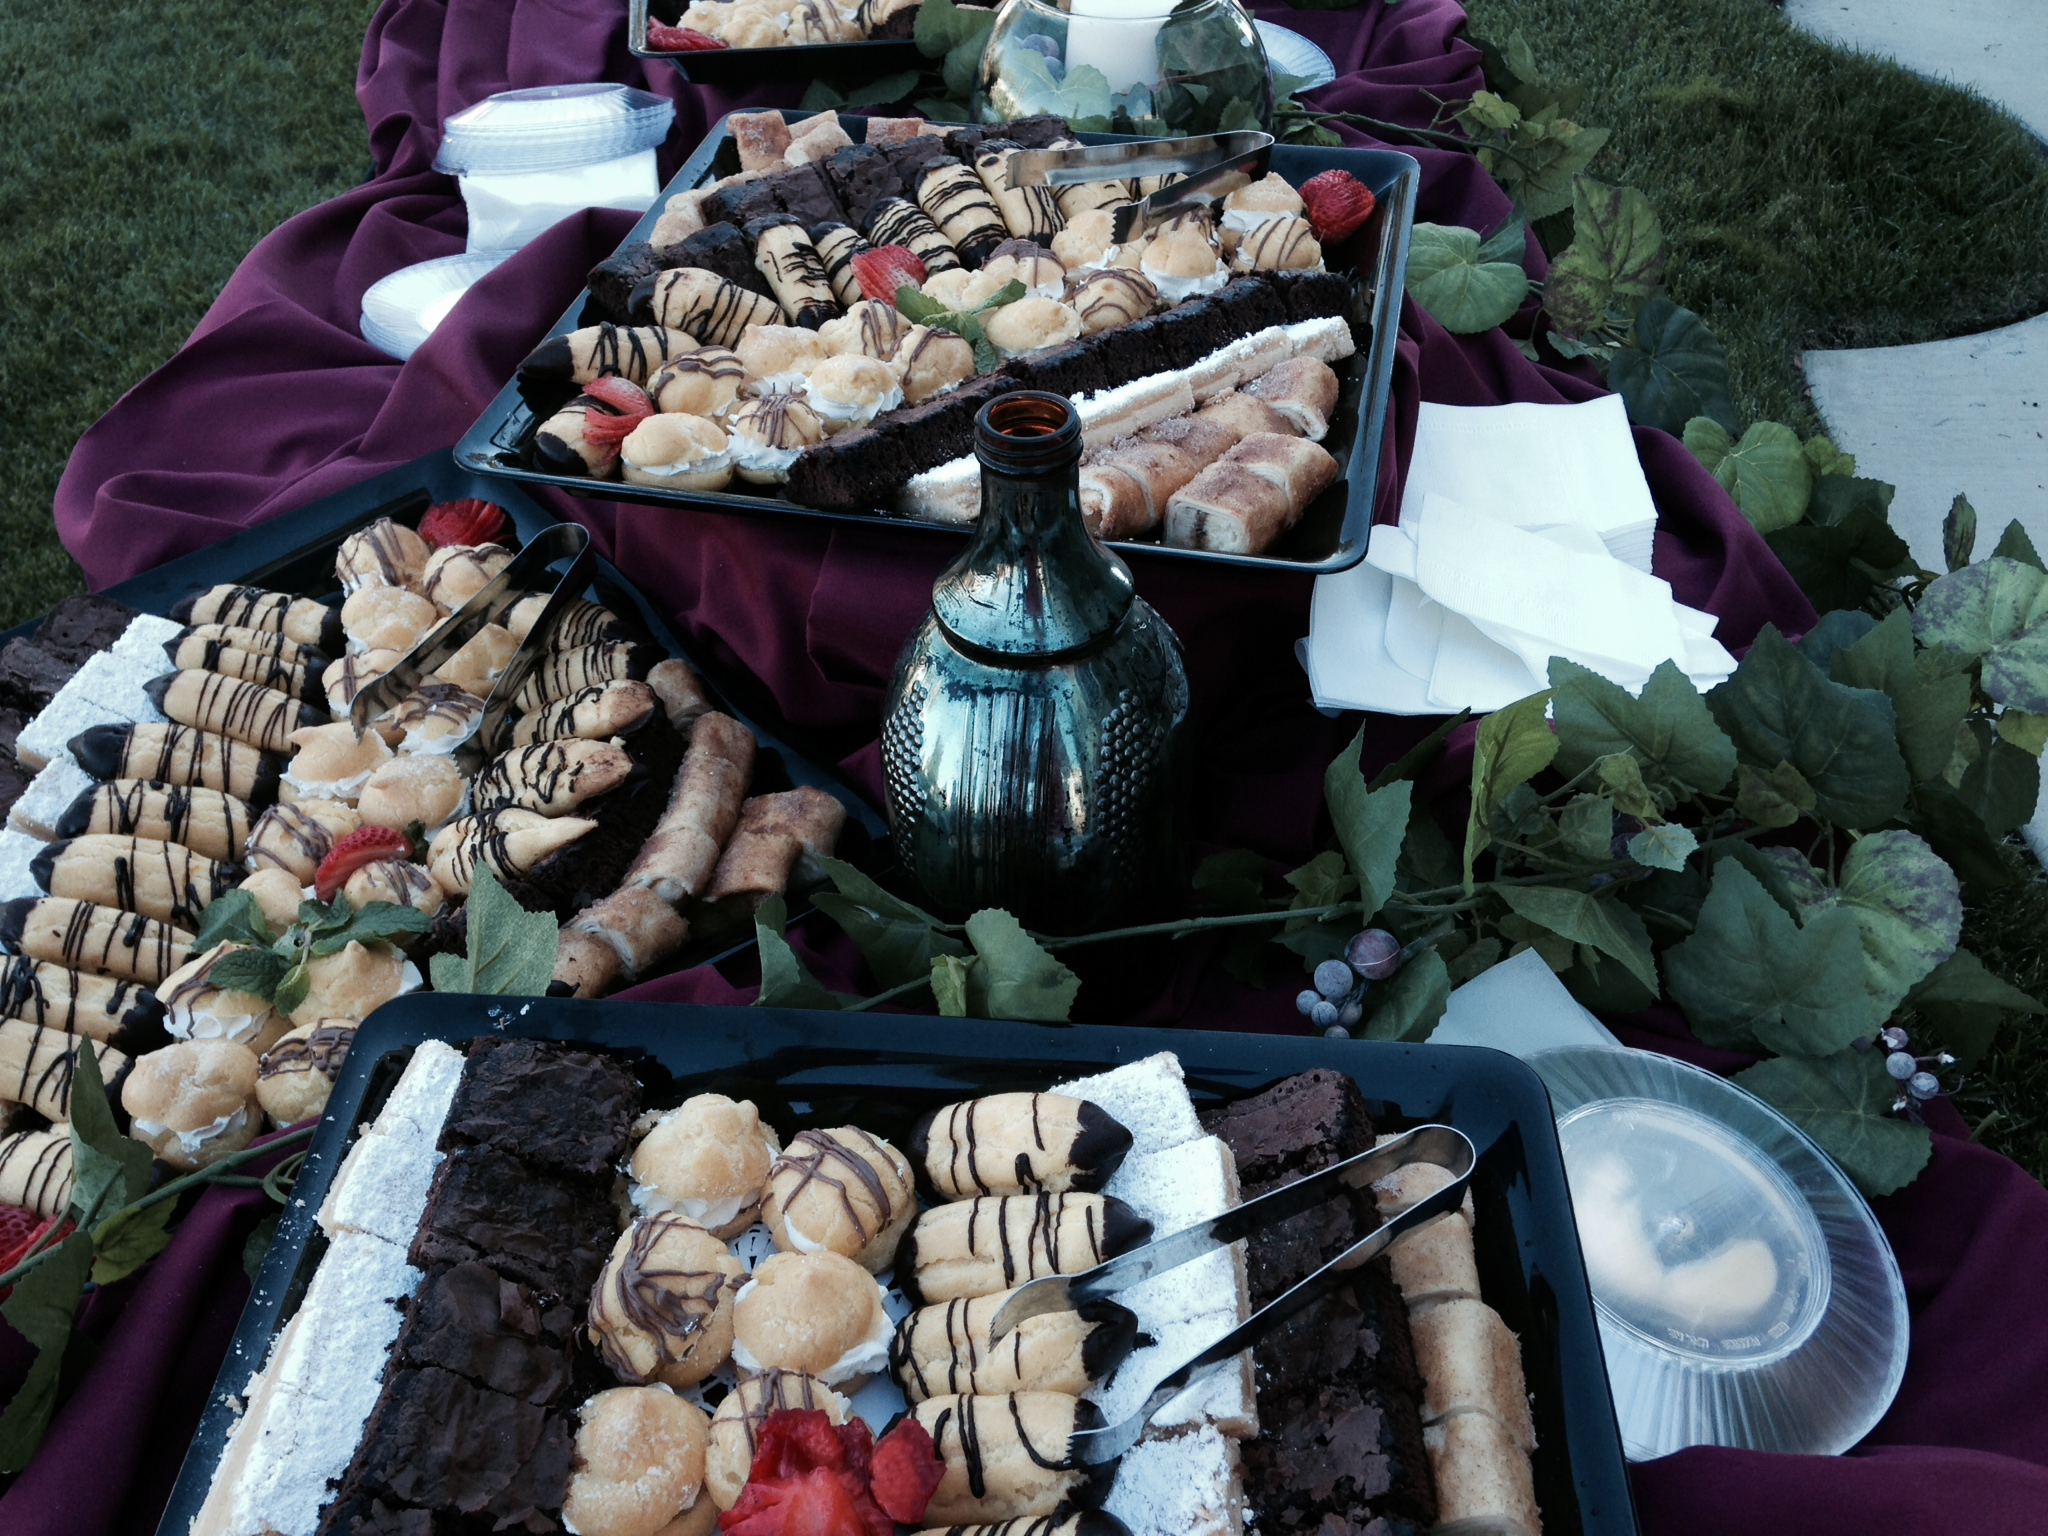 pastries and cakes on a catering table